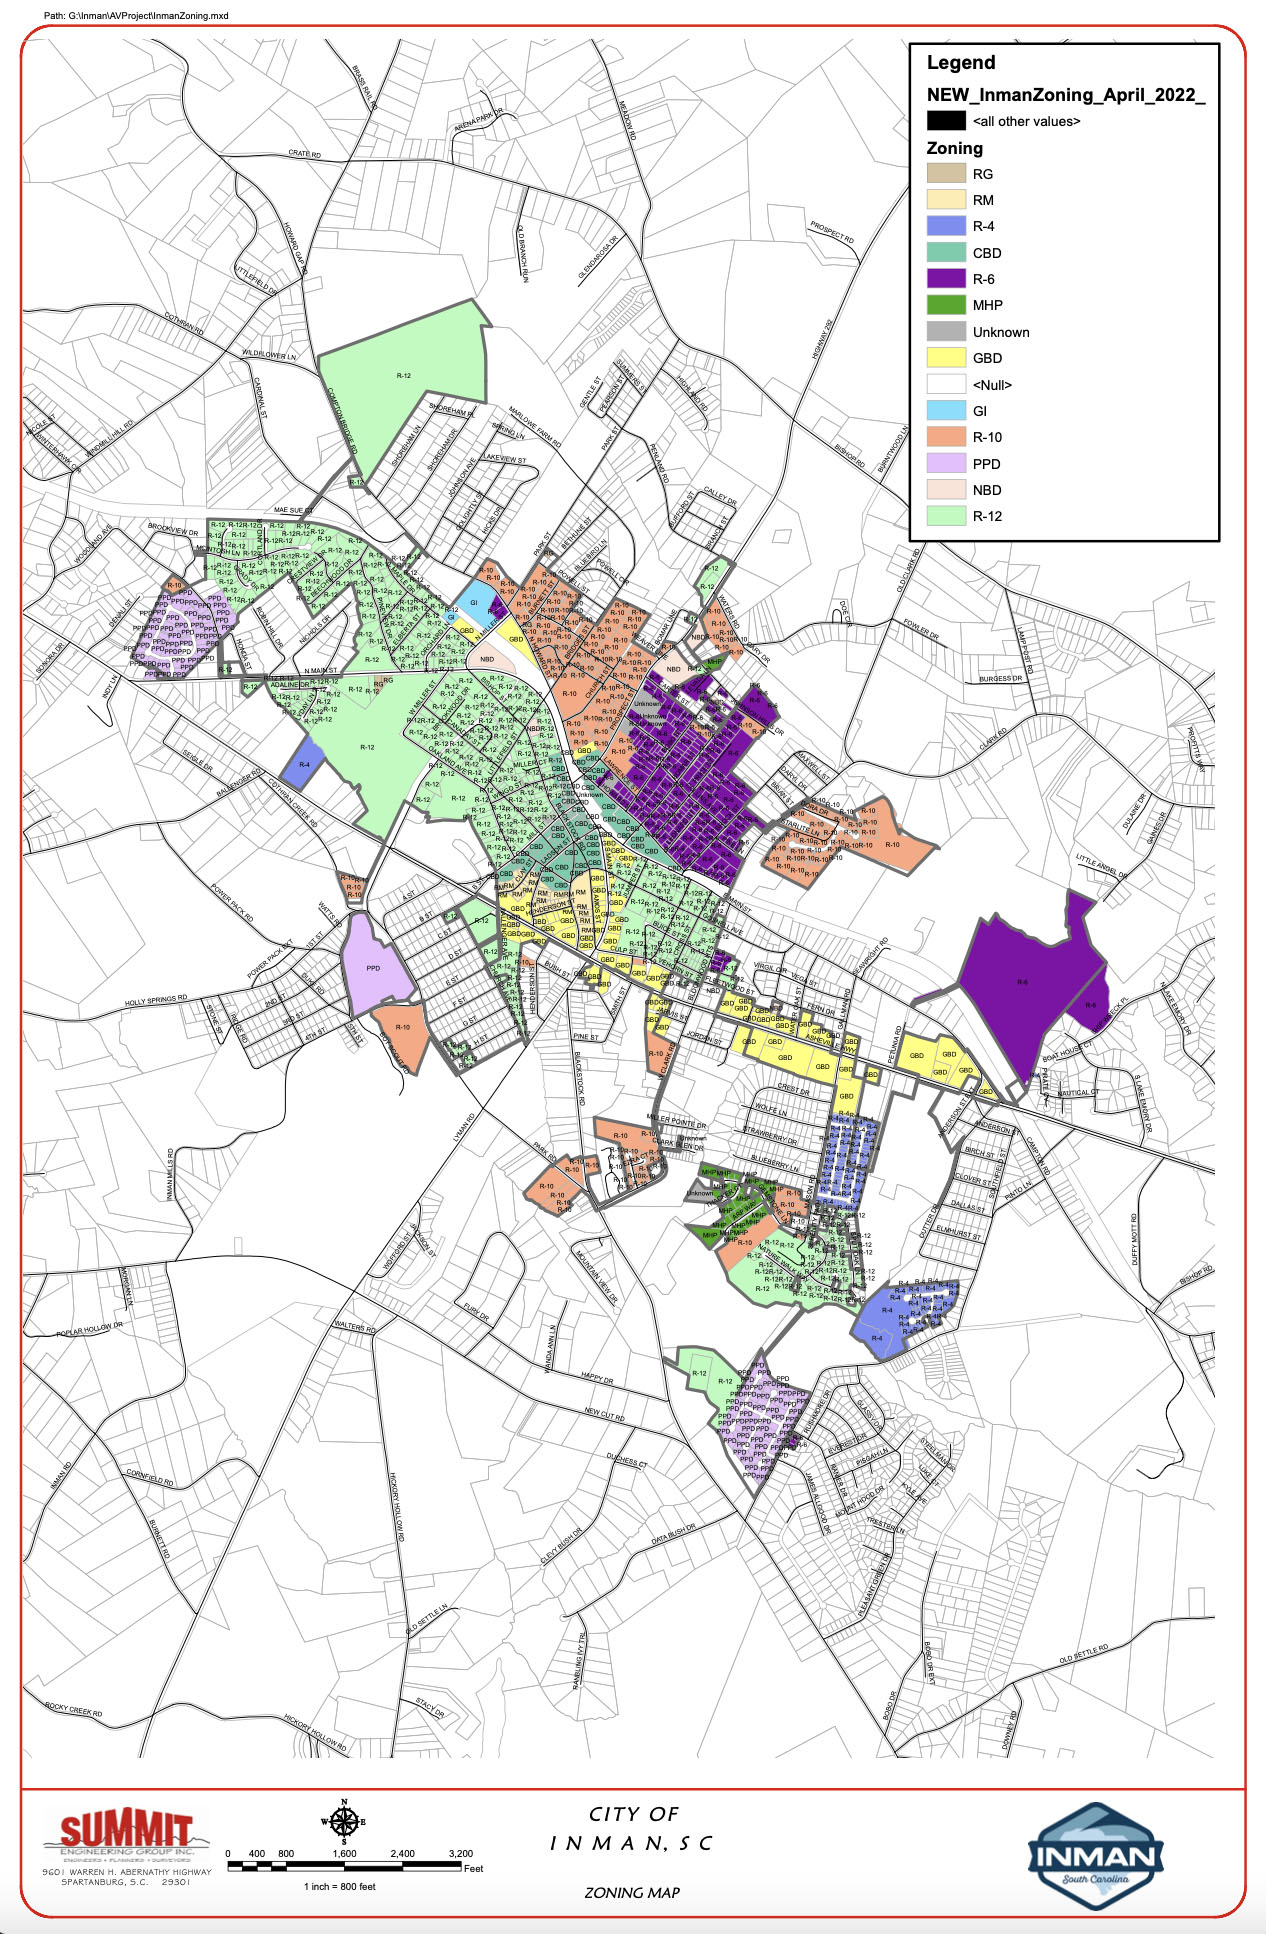 City of Inman Zoning Map